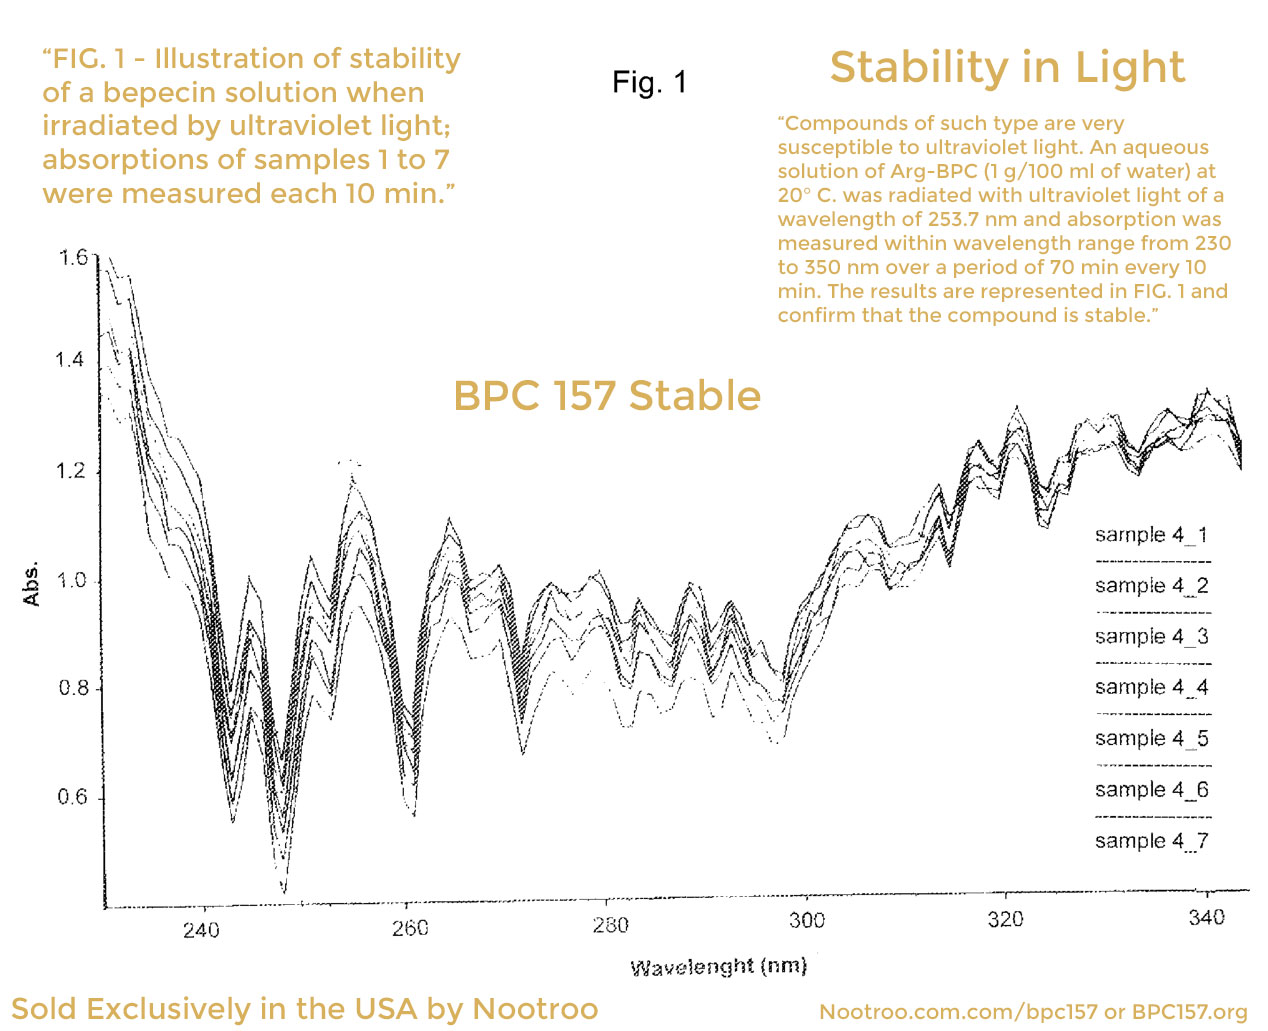 BPC 157 Stability In Light